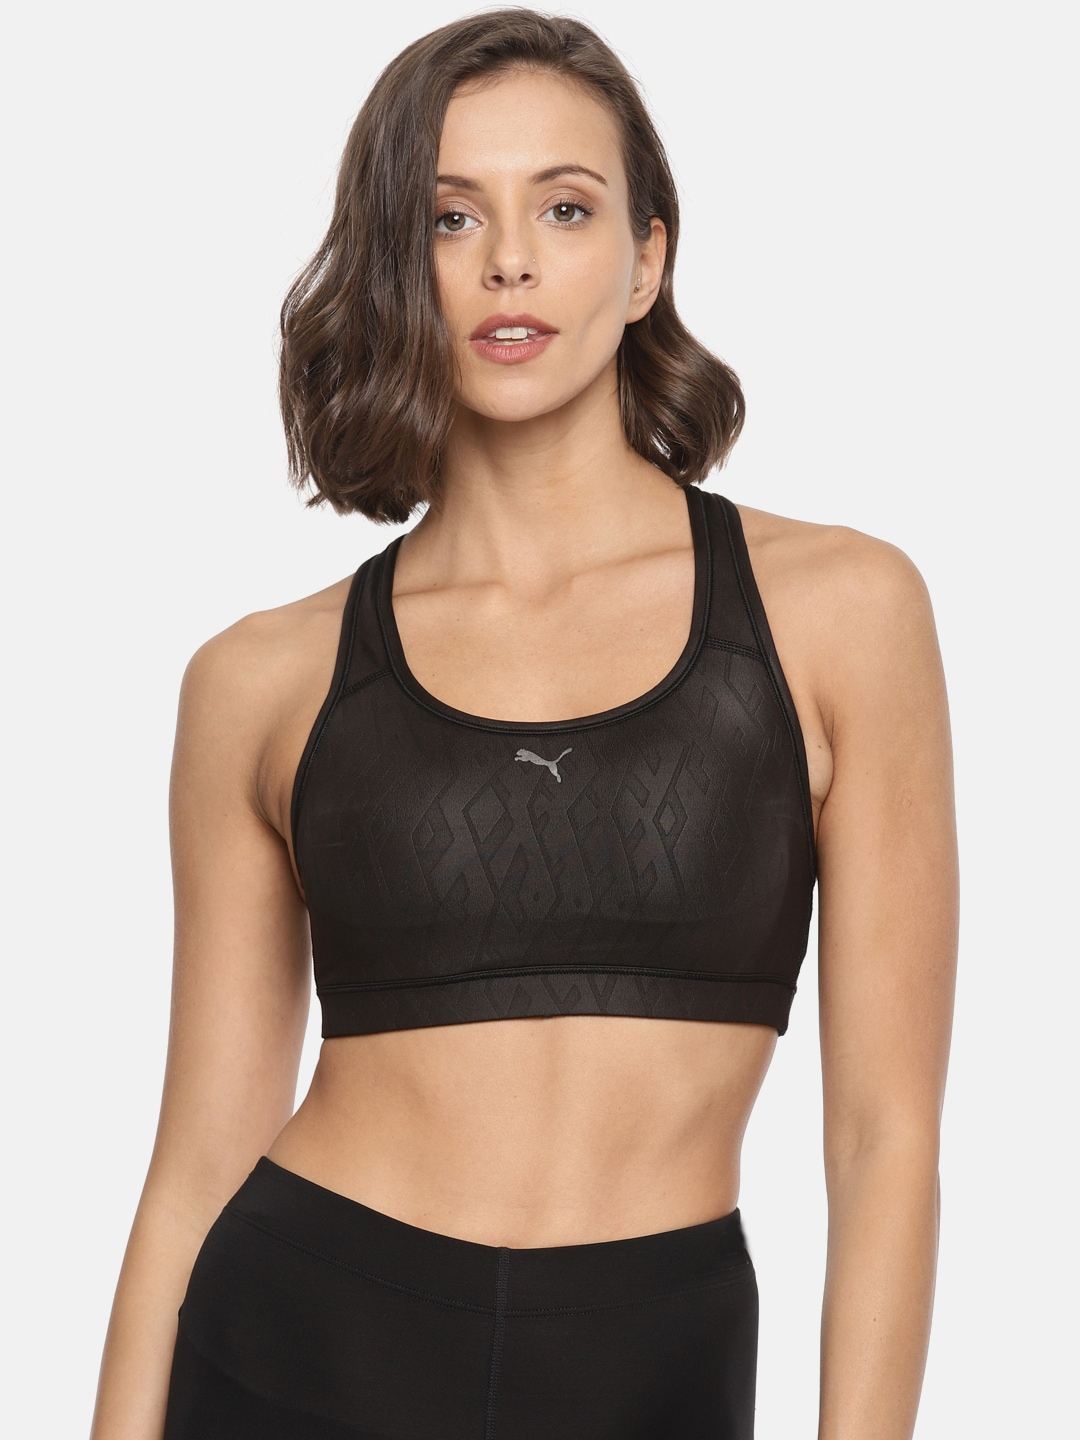 042670d9a1 Sports Bra - Shop Online For Women Sports Bras in India